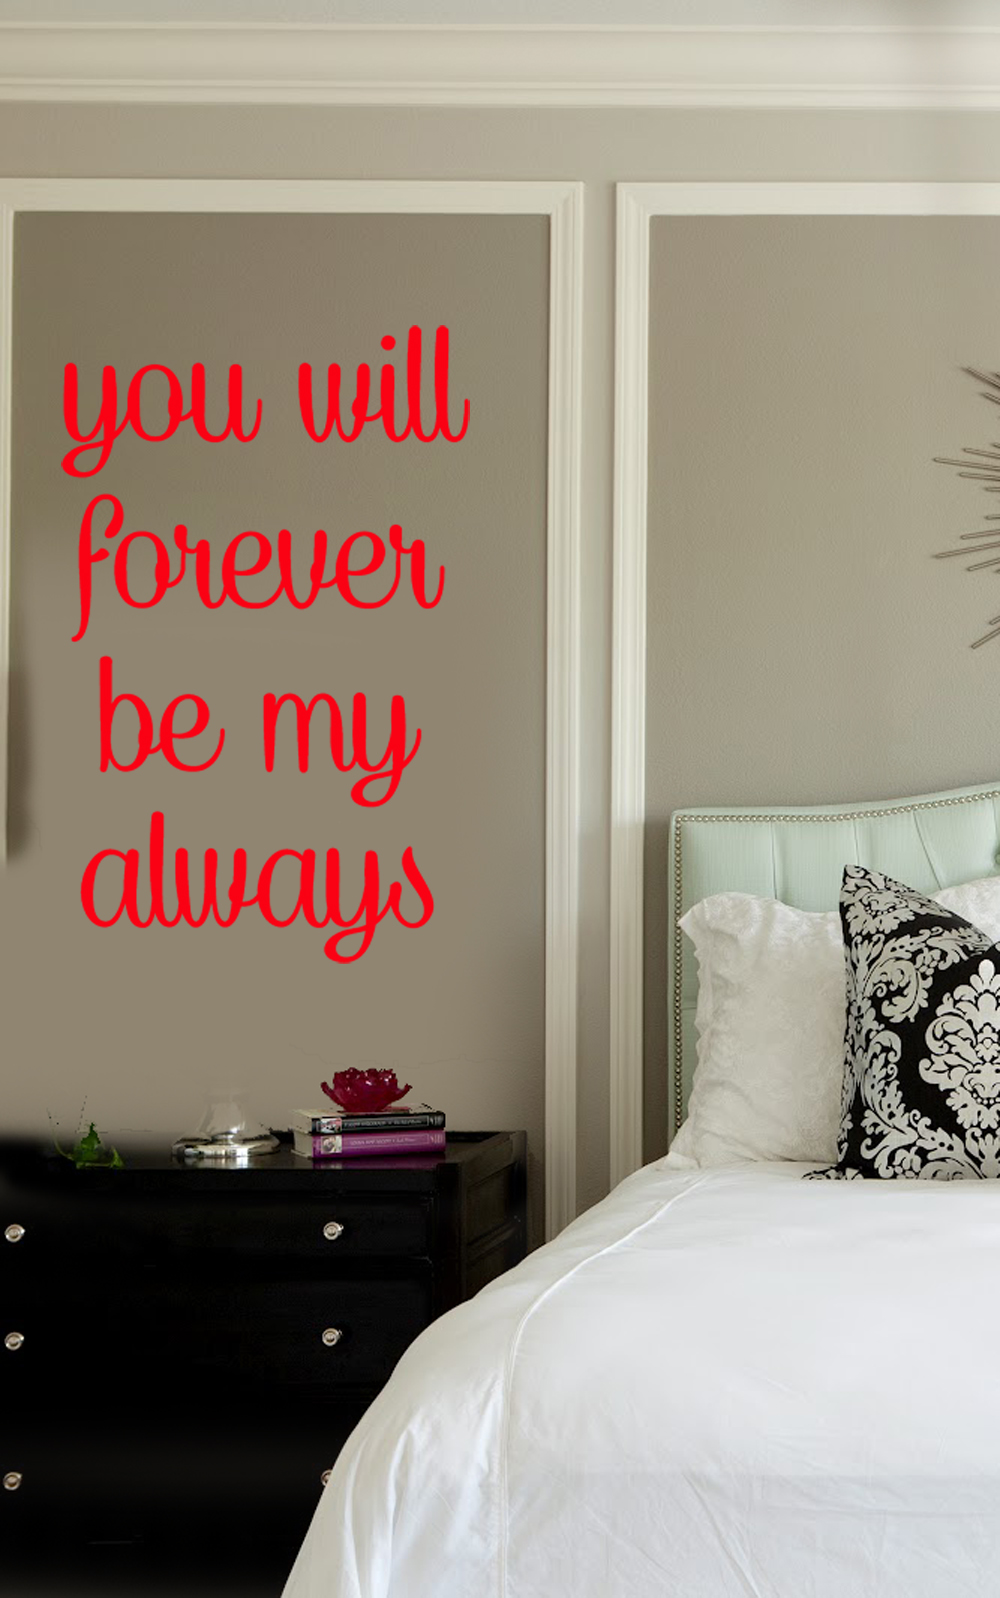 You Will Forever Be My Always Vinyl Wall Quote Love Saying Bedroom Decor  from Sticker This